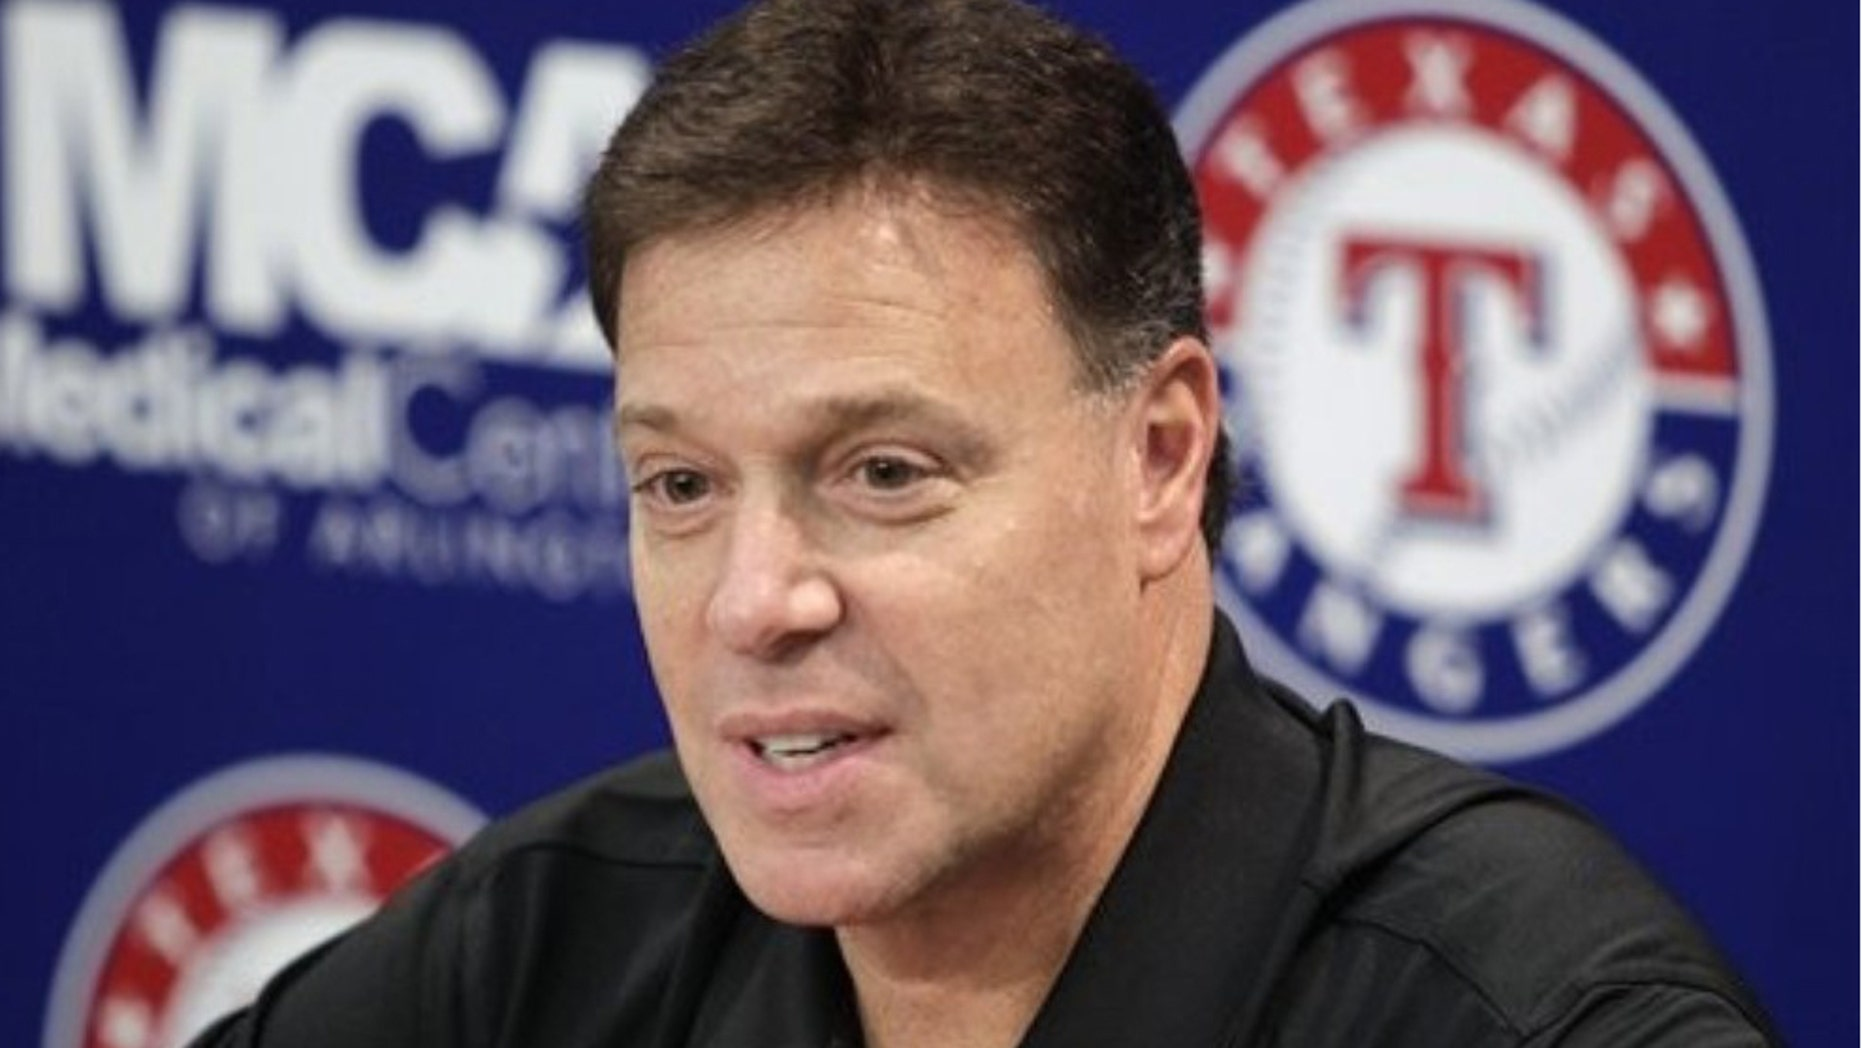 March 11: Texas Rangers co-owner Chuck Greenberg is leaving the organization after only seven months in the position.